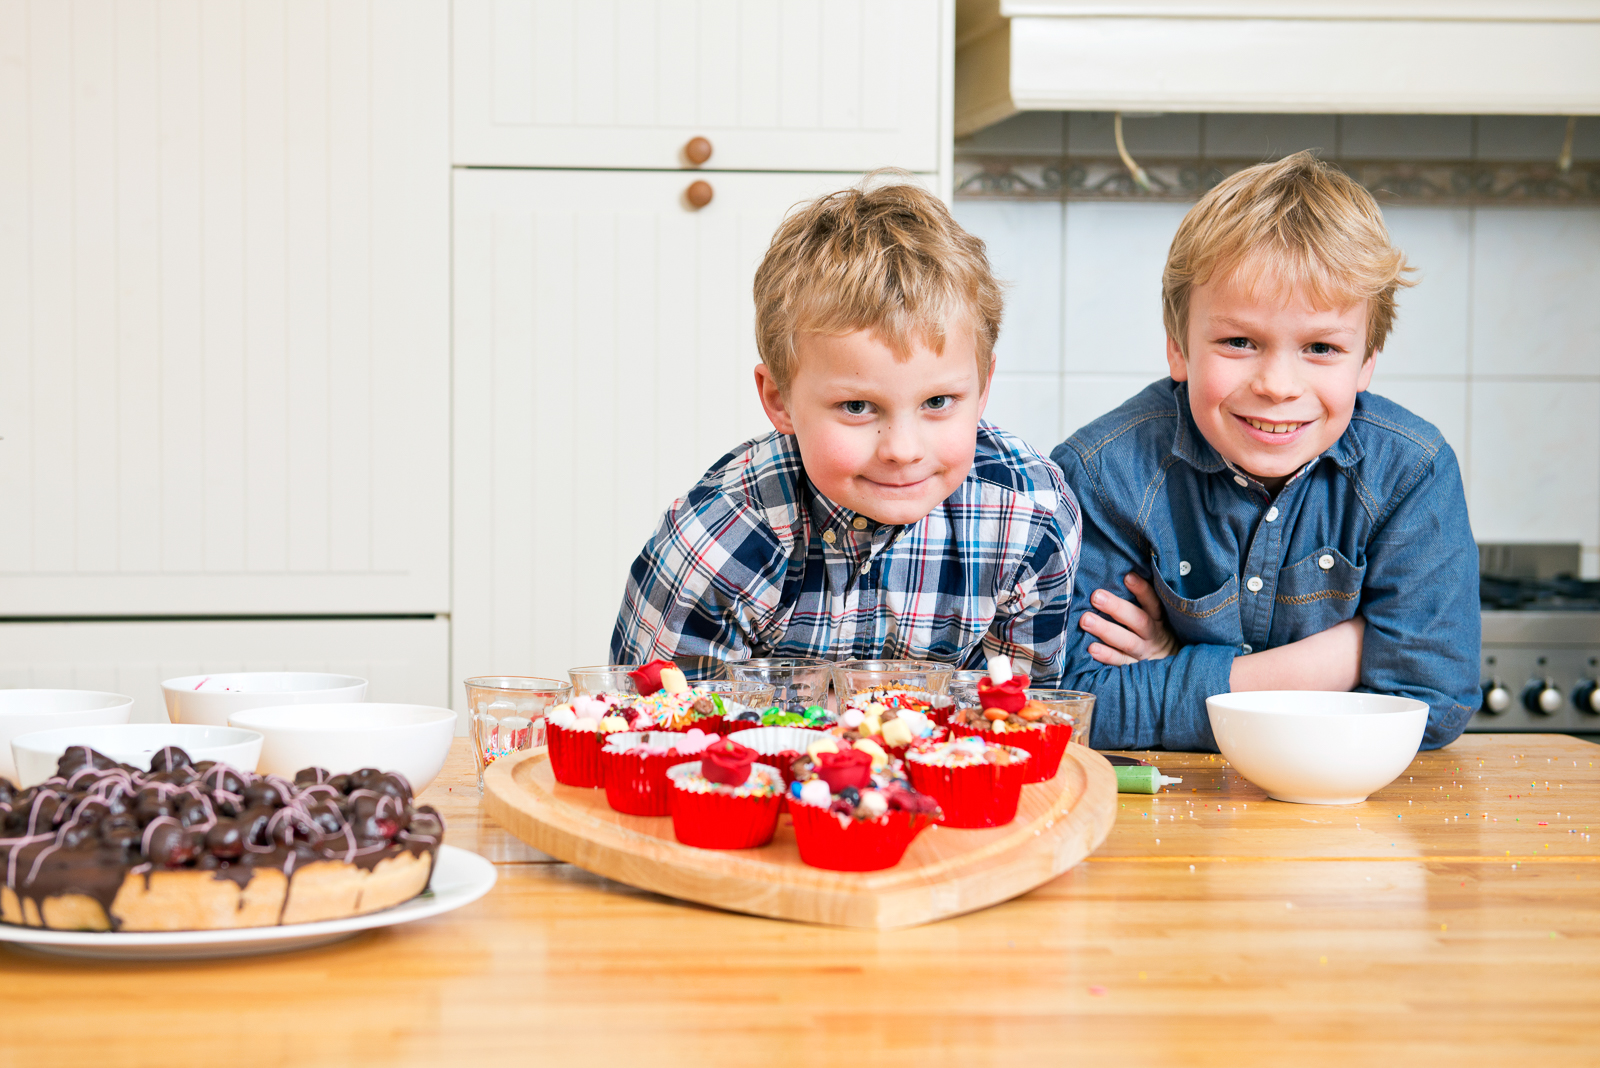 Two brothers posing in a kitchen, together in front of a heart shaped cutting board with freshly baked and decorated cupcakes